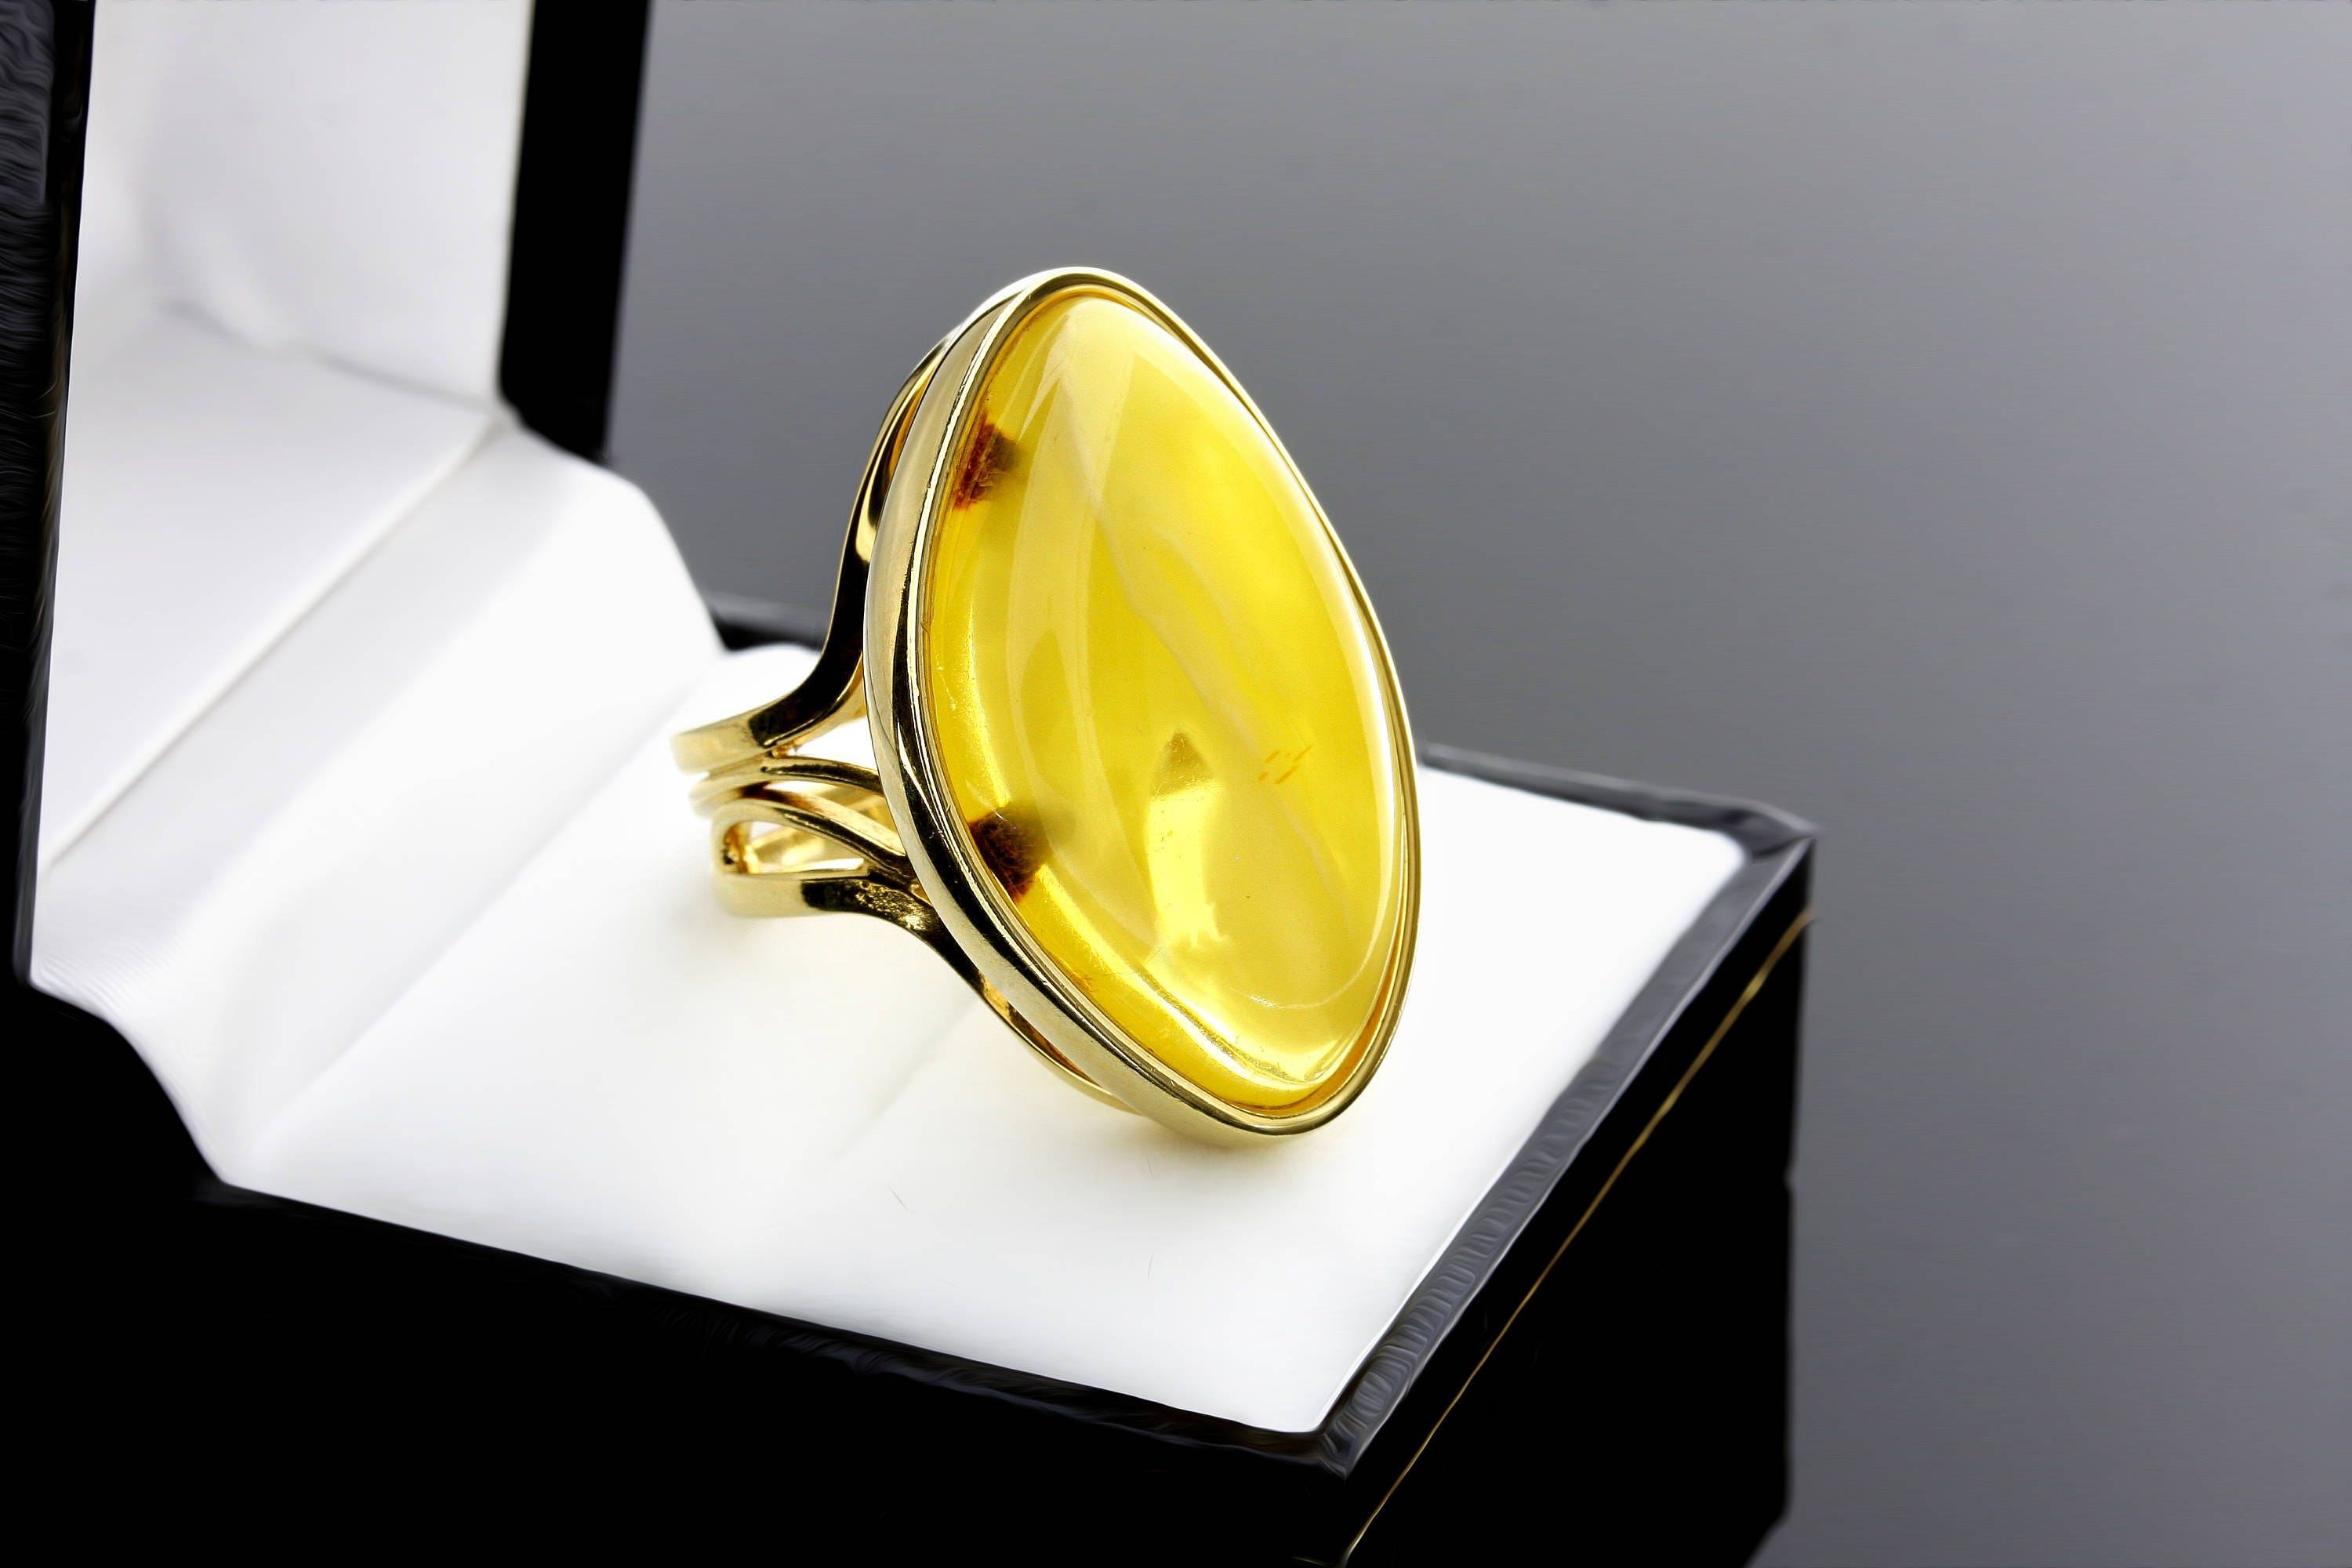 for gold lightning allergy luxusteel men anti jewelry in rings jewellery wedding size item stainless women accessories from to steel heart